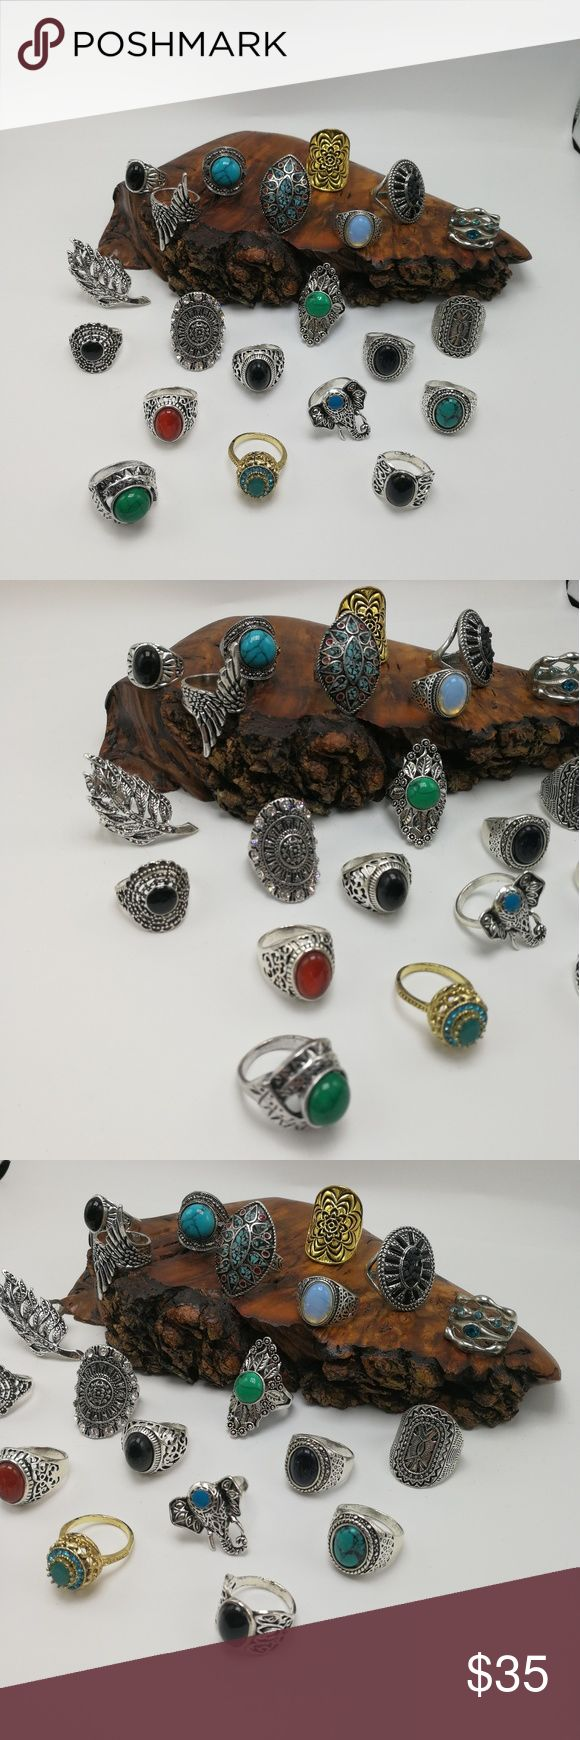 🎄🎅🎄 Bundle 20 rings PLUS Turquoise silver stone HUGE Bundle 20 Vintage Antiqued Tibet silver Gold rings. Mixed Metals. lead & Nickel free. You will receive ALL the items shown. NOT sold individually. Not sold in a smaller bundle size. NO exceptions. No holds or trades. Price is firm. Display is NFS. Bundle to SAVE. Great for Resale! Size:9/10 RB#259 PLUS SIZE Jewelry Rings